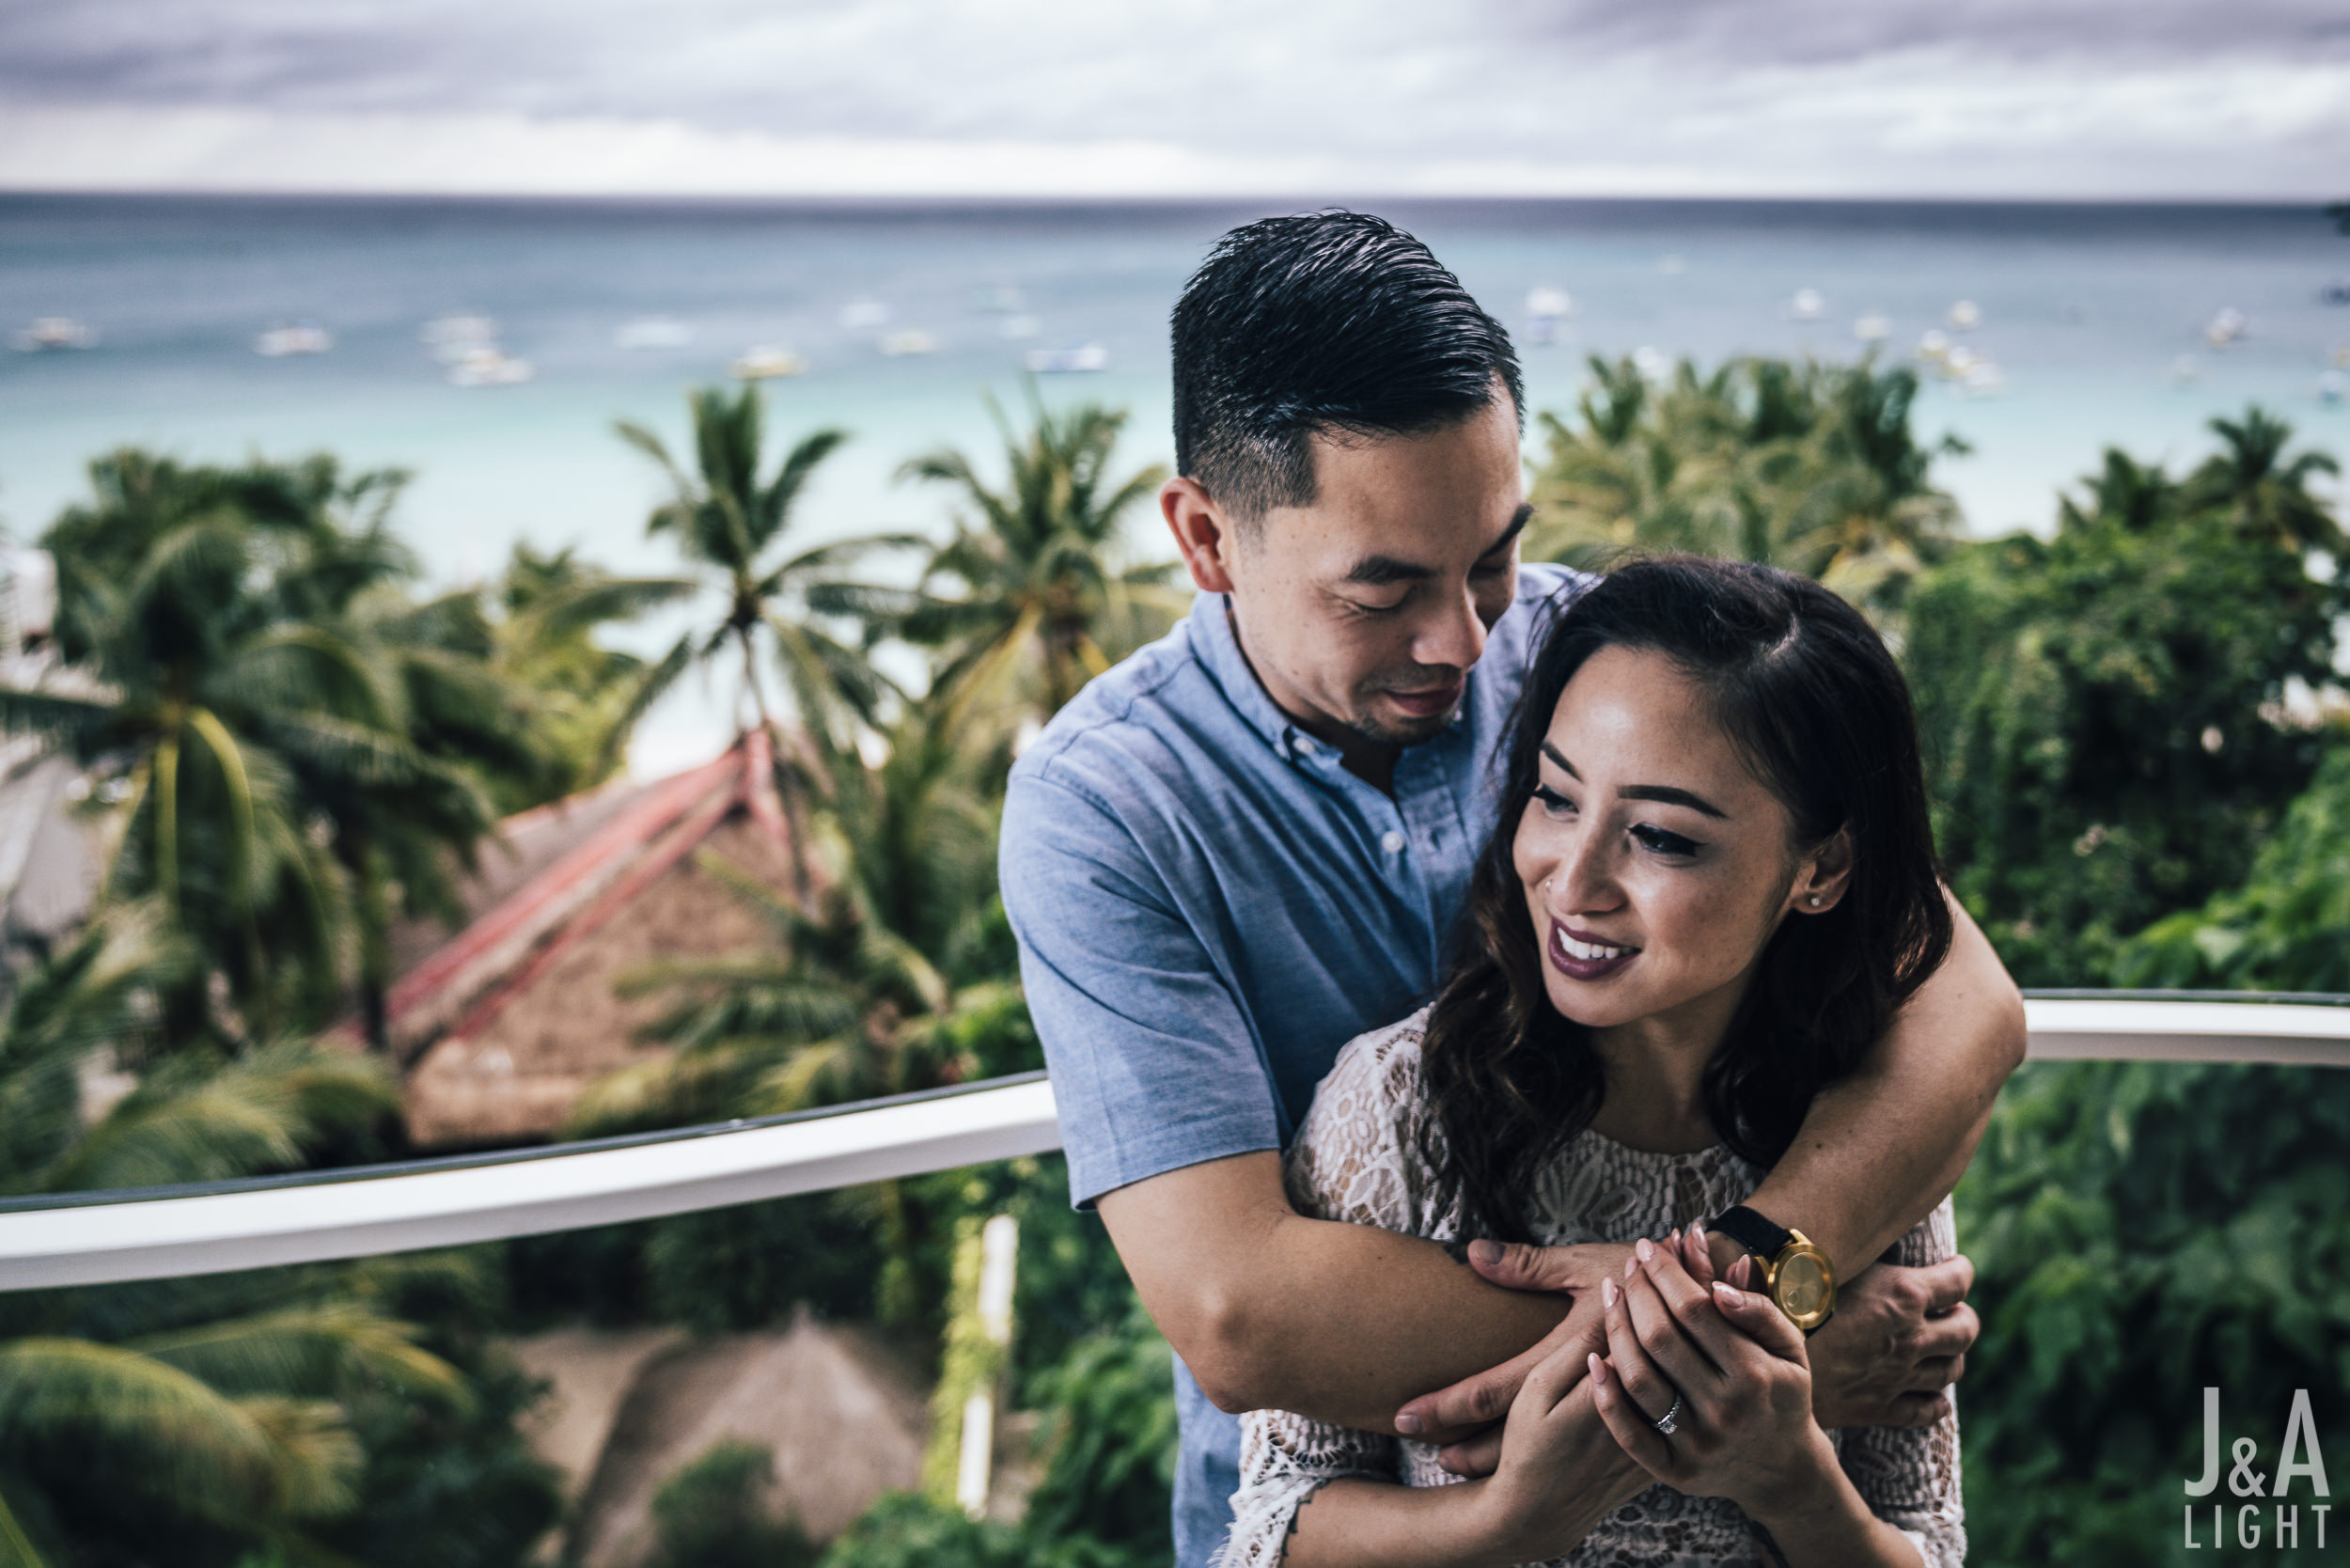 MarJow_DestinationWedding_PreWedding_Boracay-004.jpg